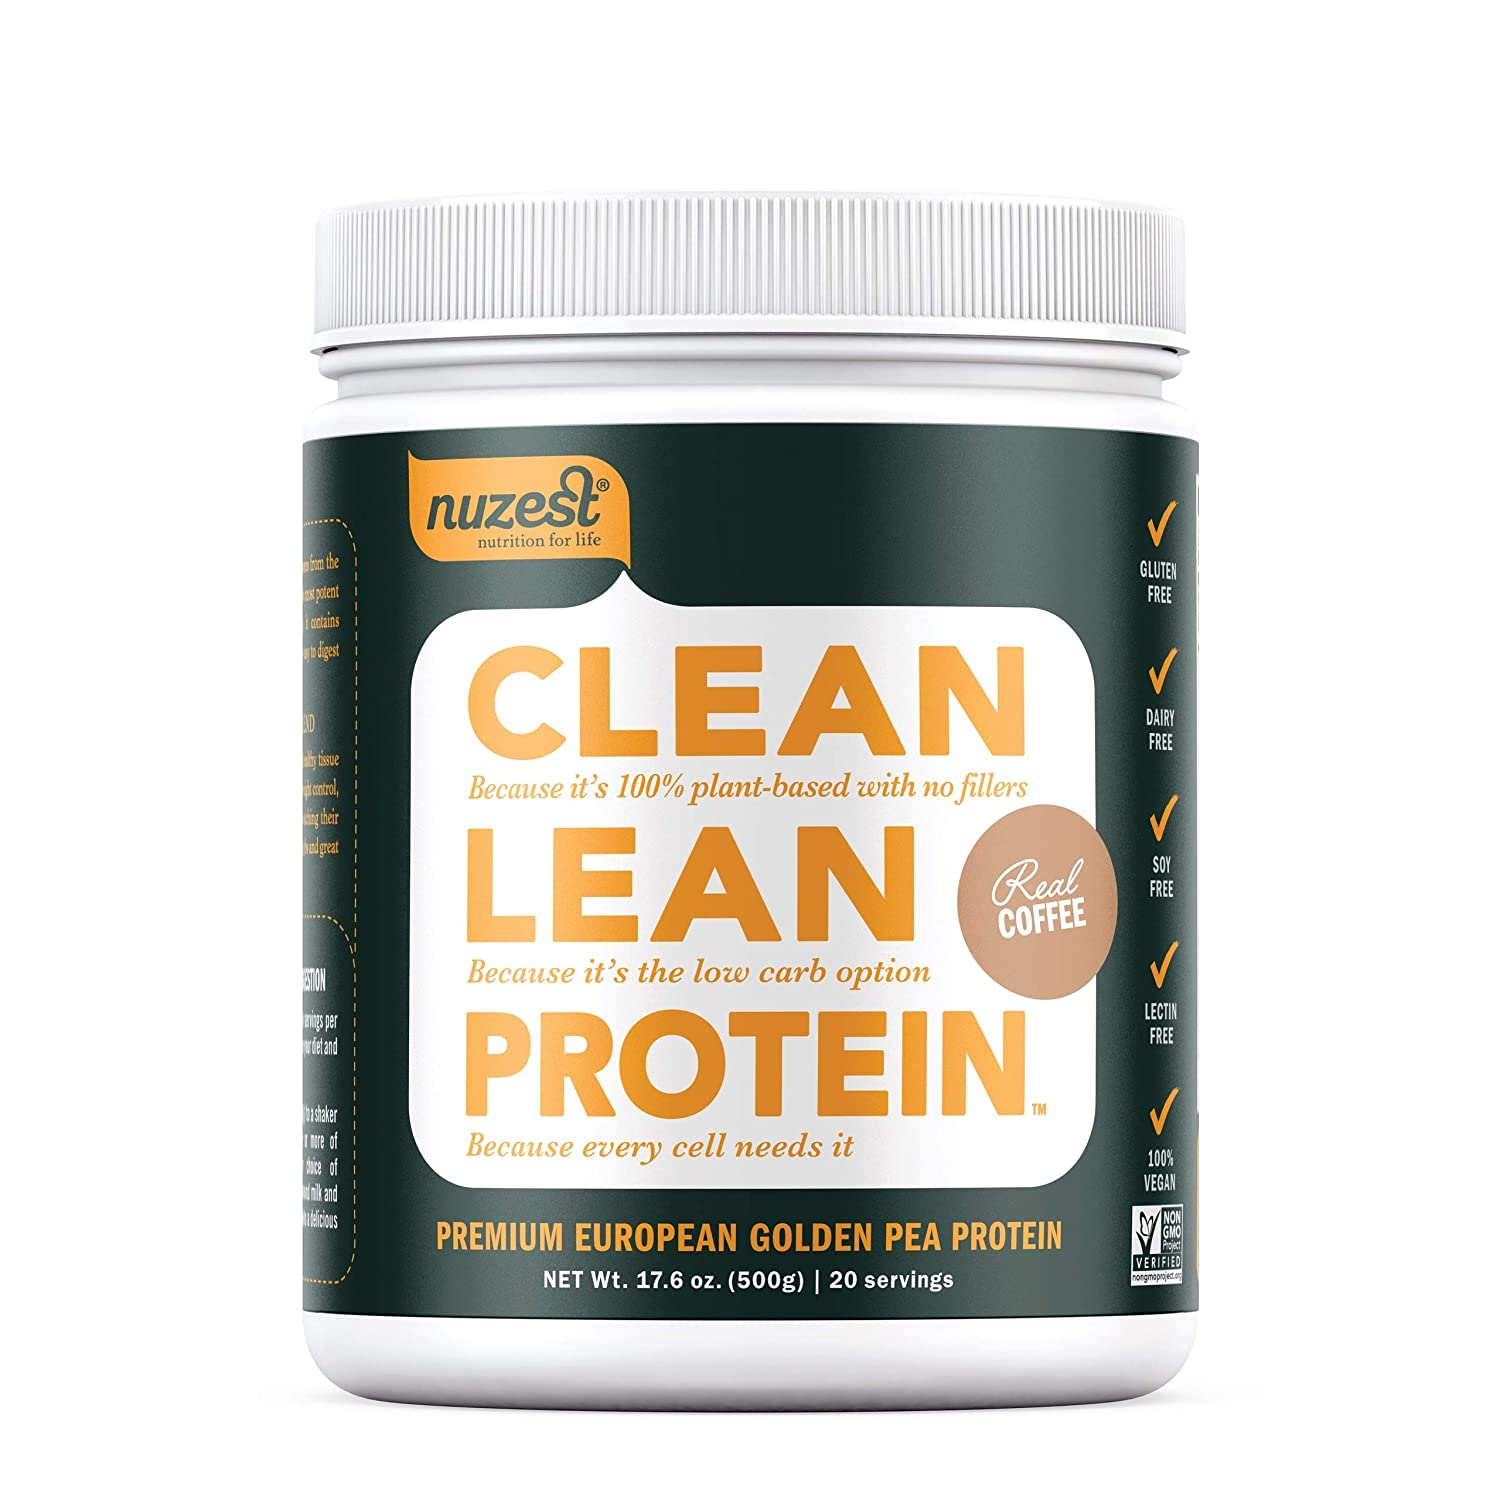 Nuzest Clean Lean Protein – Premium Vegan Protein Powder, Plant Protein Powder, European Golden Pea Protein, Dairy Free, Gluten Free, GMO Free, Naturally Sweetened, Real Coffee, 20 Servings, 1.1 lb